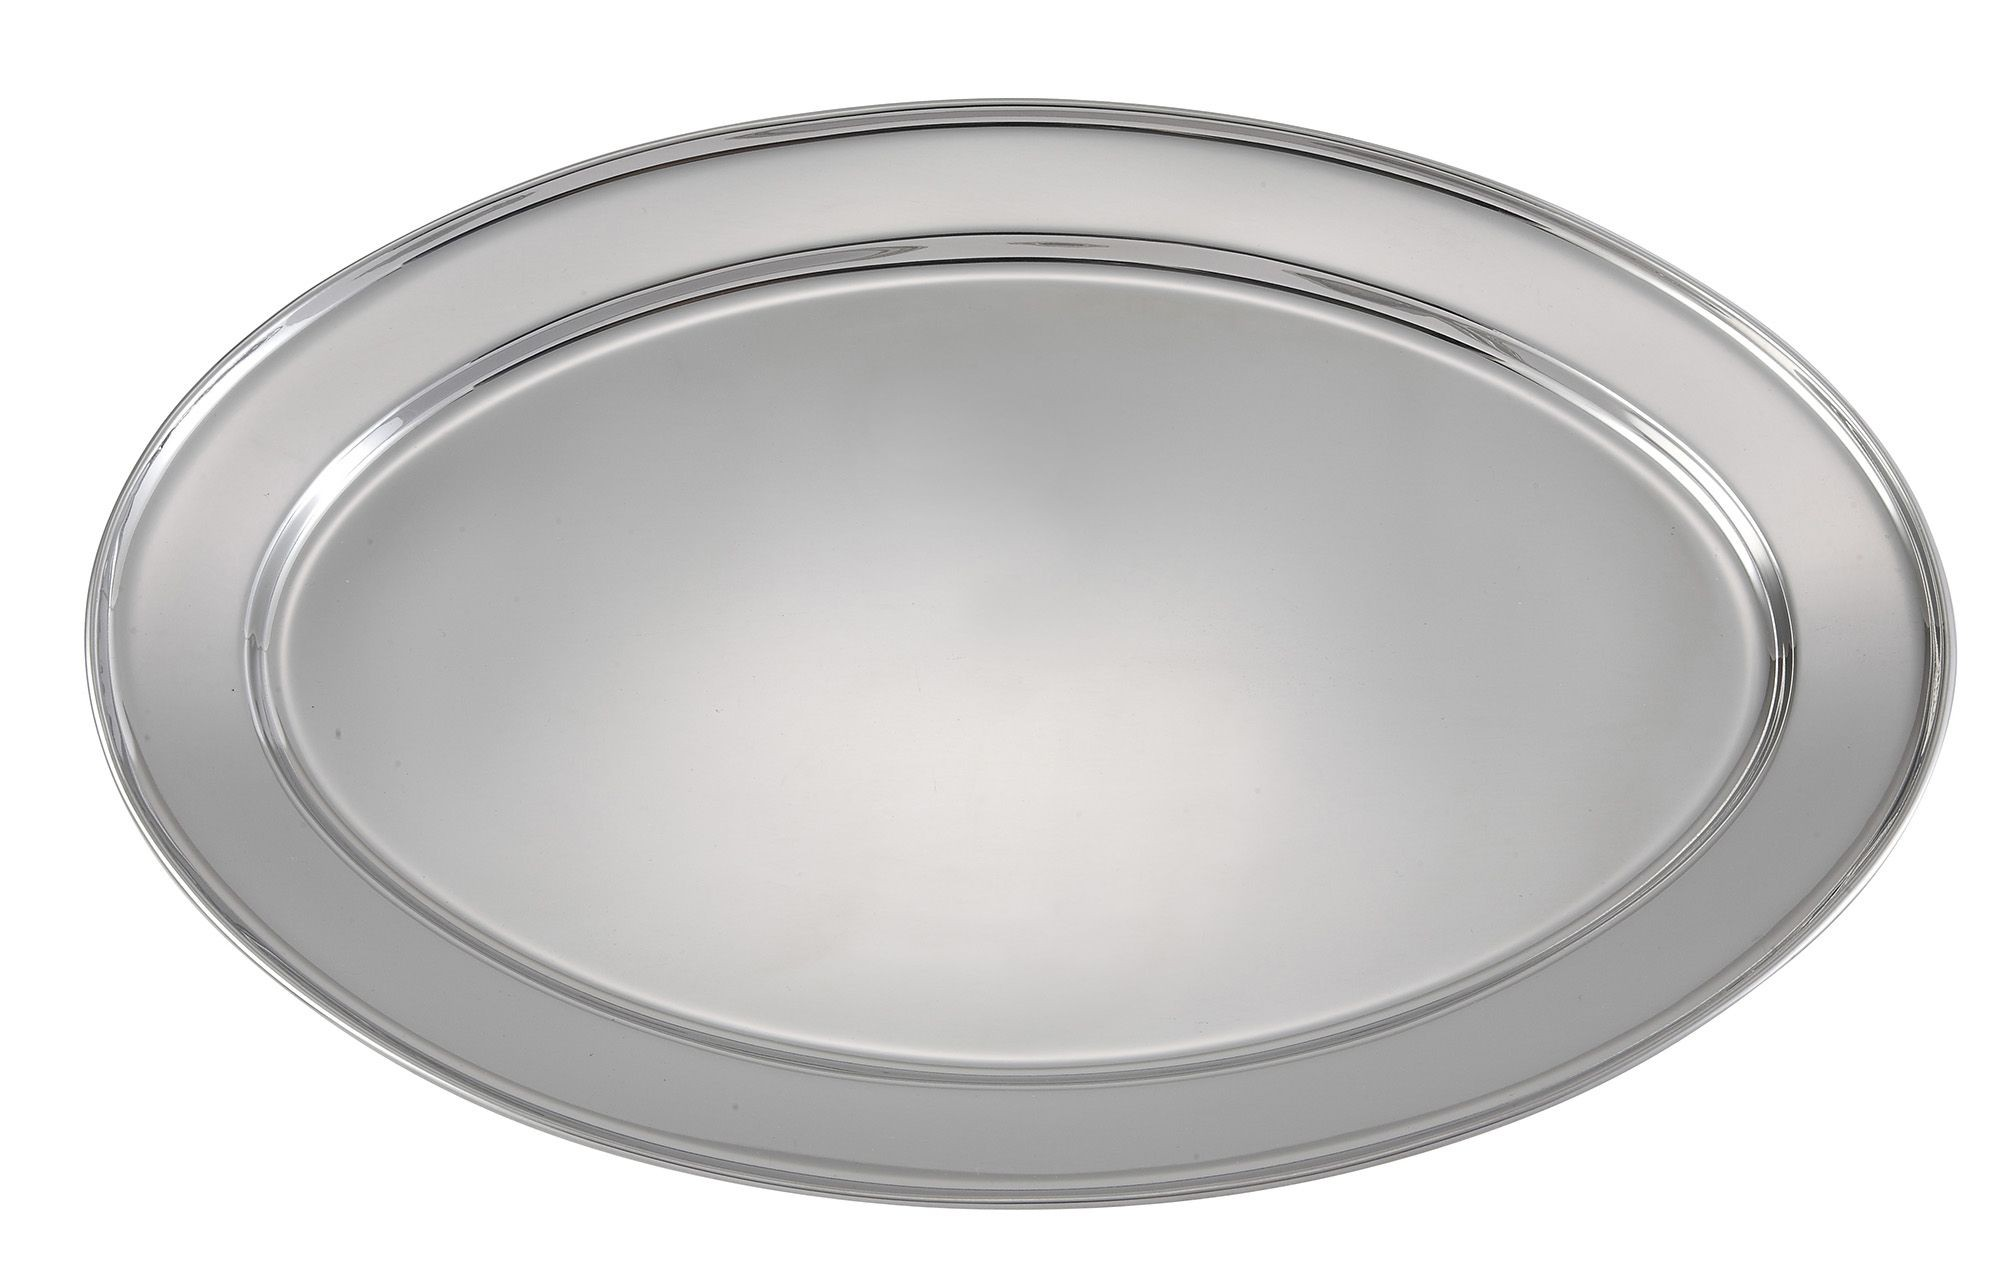 "Stainless Steel Oval Platter - 18"" x 11-1/2"""